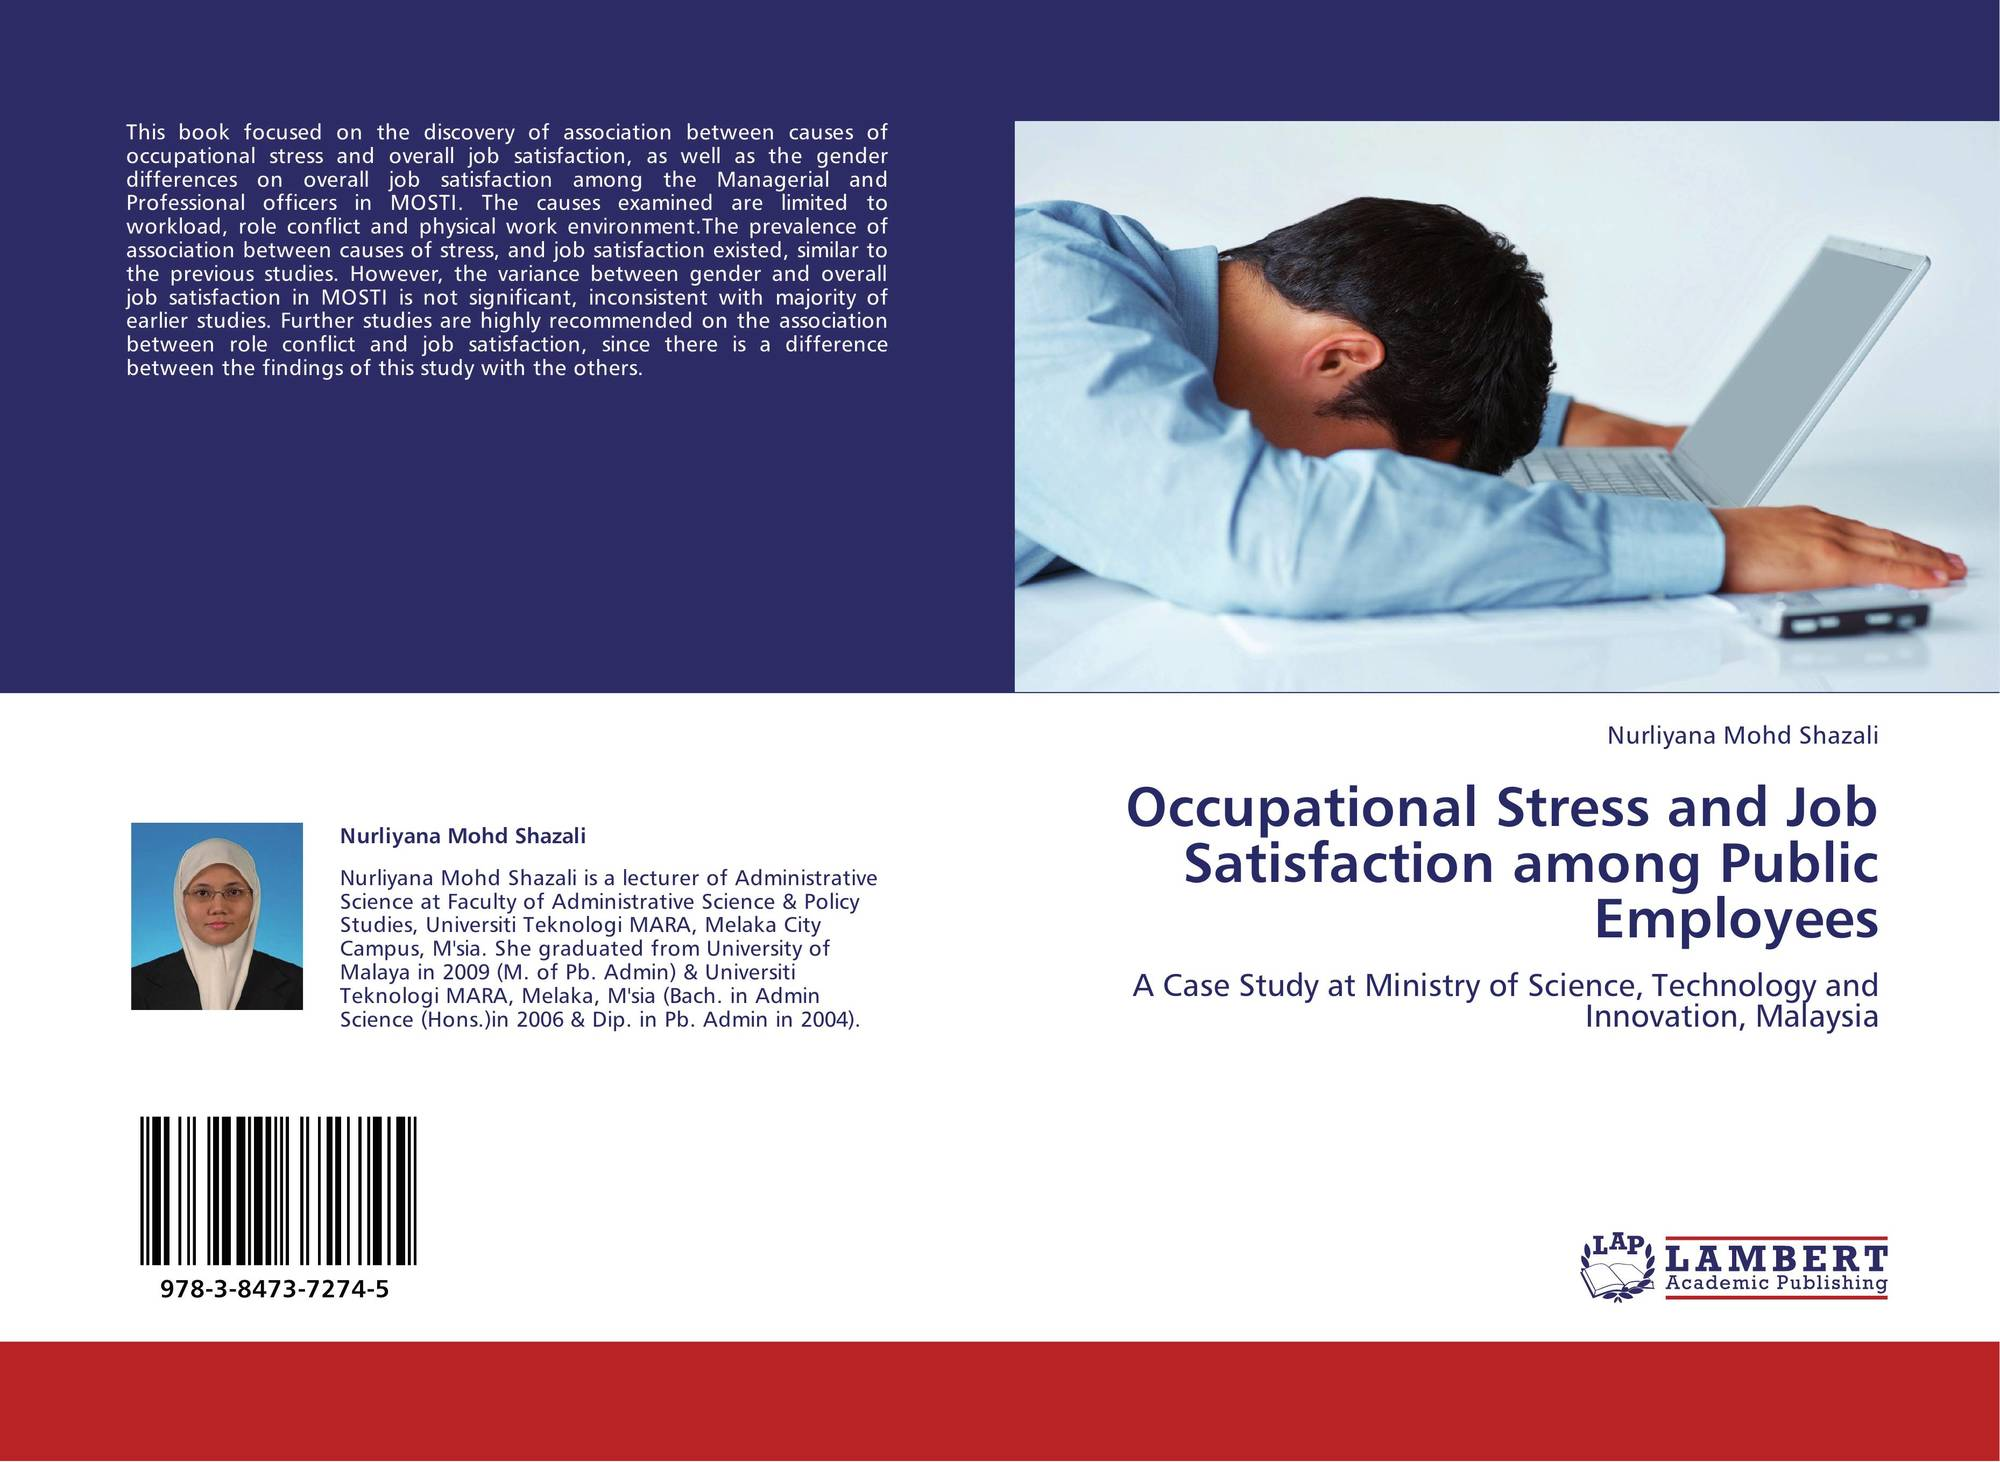 case studies on job stress In the words of westman job stress arises when demand of job exceed abilities, while job-related strains are responses or outcomes resulting from the experience of stress (westman, 2005) from mcgraw-hill science & technology dictionary work stress mean any external force that acts on the body of a worker during the performance of a task.